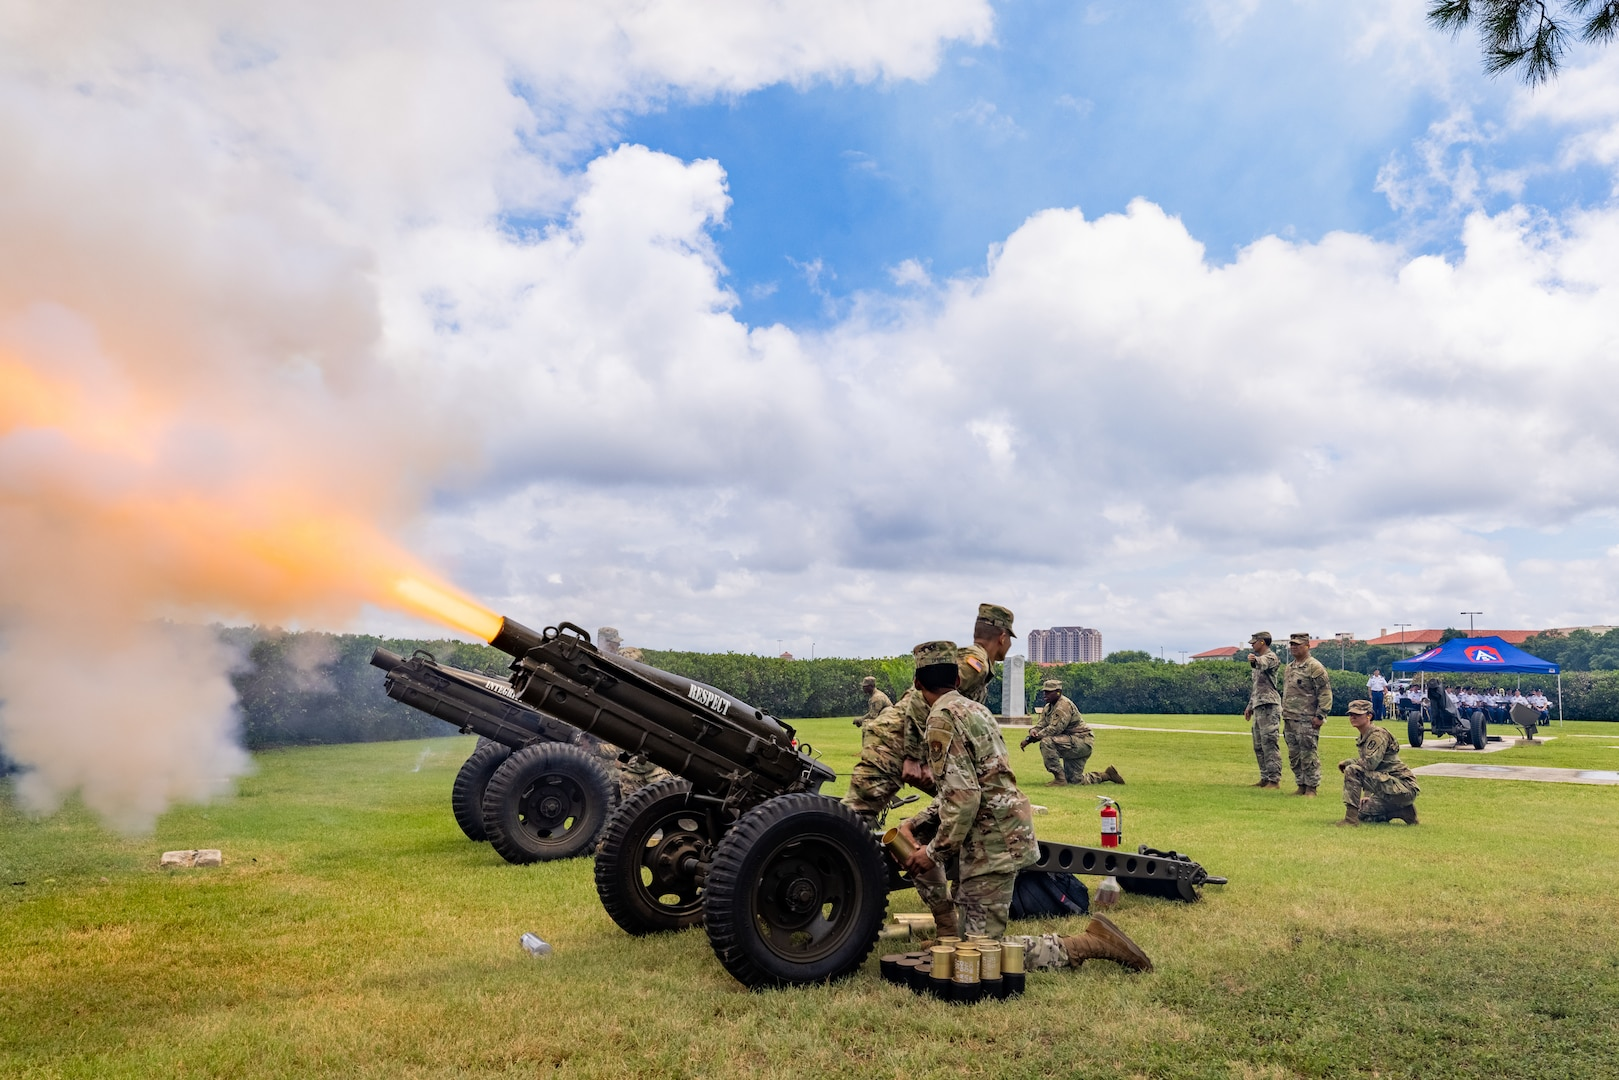 Fort Sam Houston Army Soldiers fire cannons during a Salute to the Nation ceremony, at the Joint Base San Antonio Main Flag Pole at MacArthur Parade Field at JBSA-Fort Sam Houston, Texas, July 4, 2021. The Soldiers fired 50 rounds as a salute to each of the 50 United States.